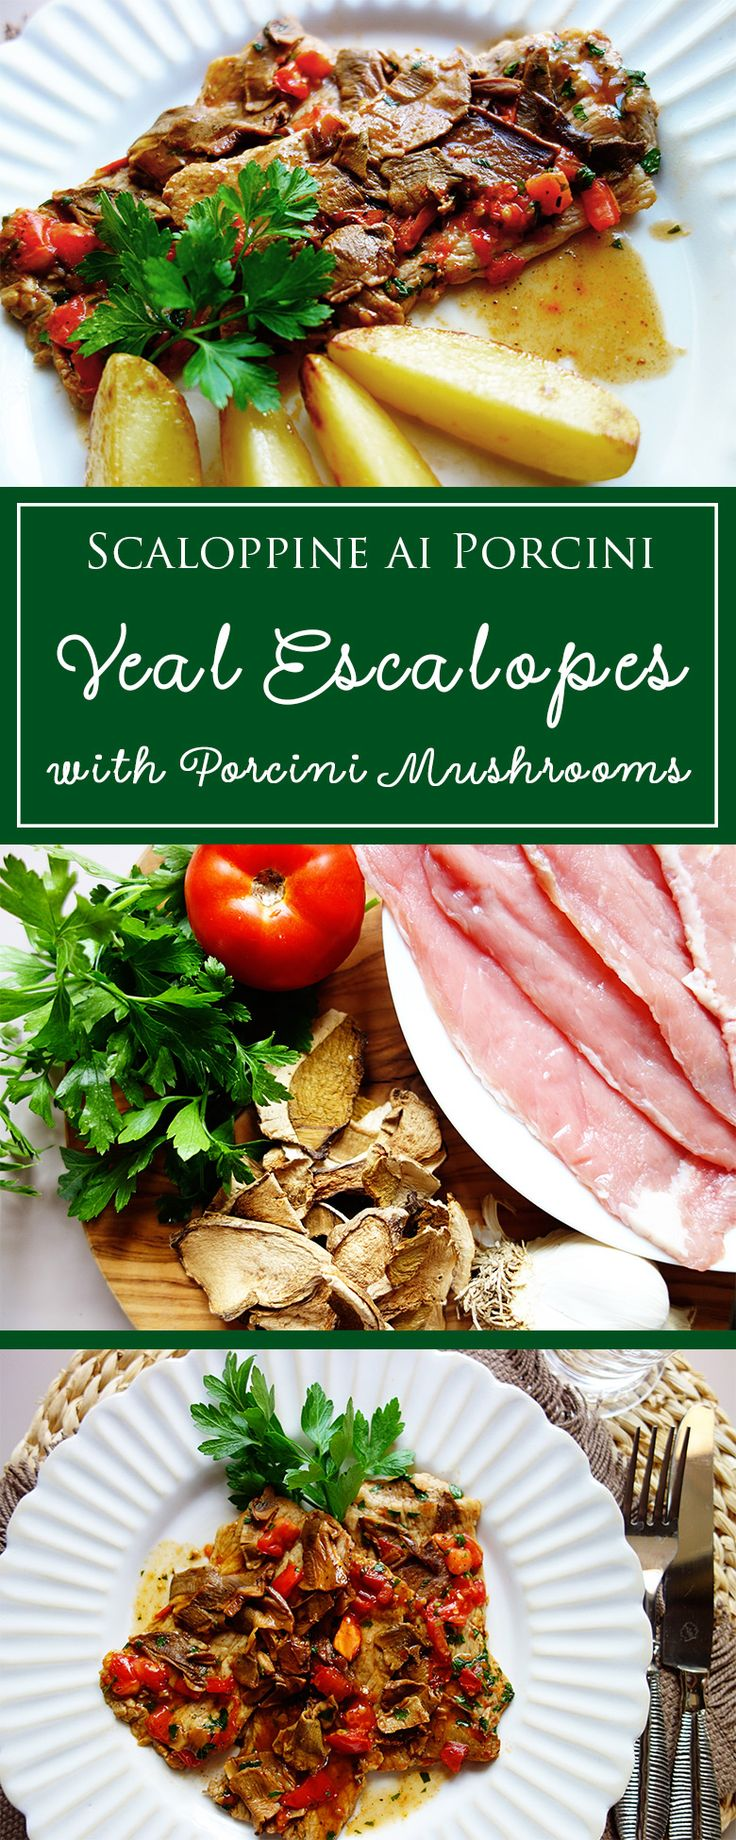 hearty veal escalopes with porcini mushrooms a simple gluten free recipe for the italian